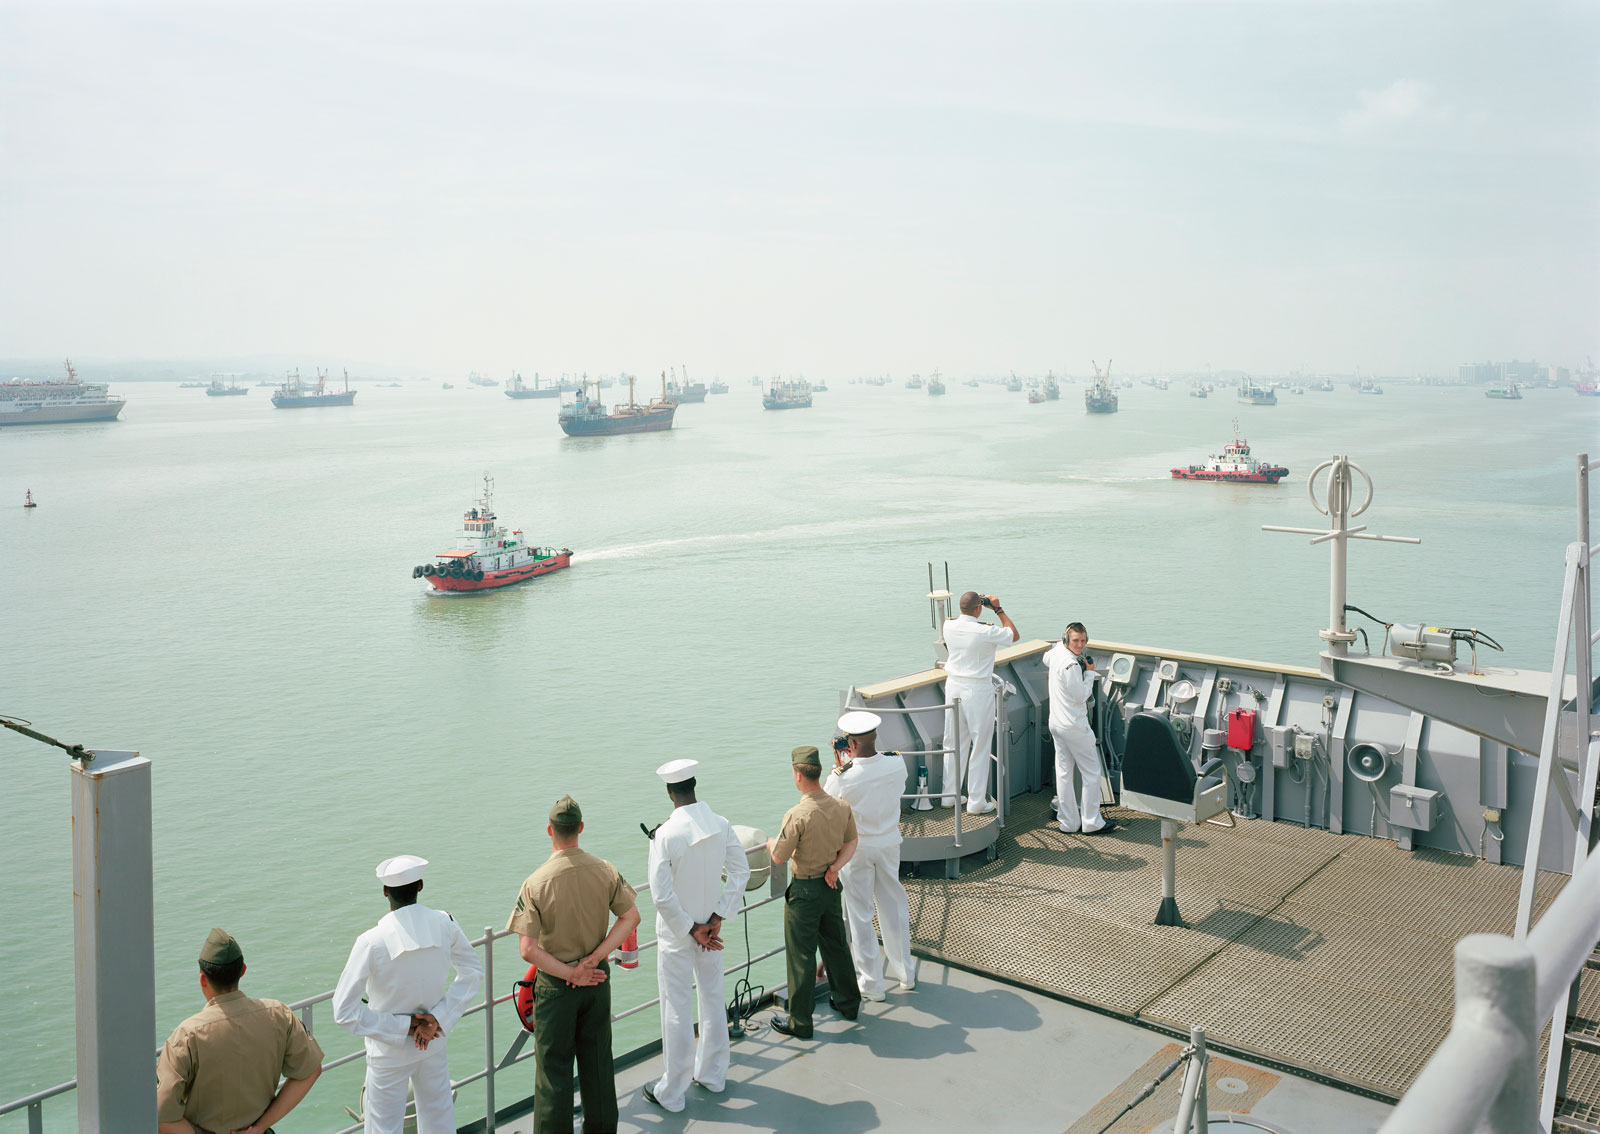 Sailors looking from the dek of a ship out onto the water, where other ships are parked